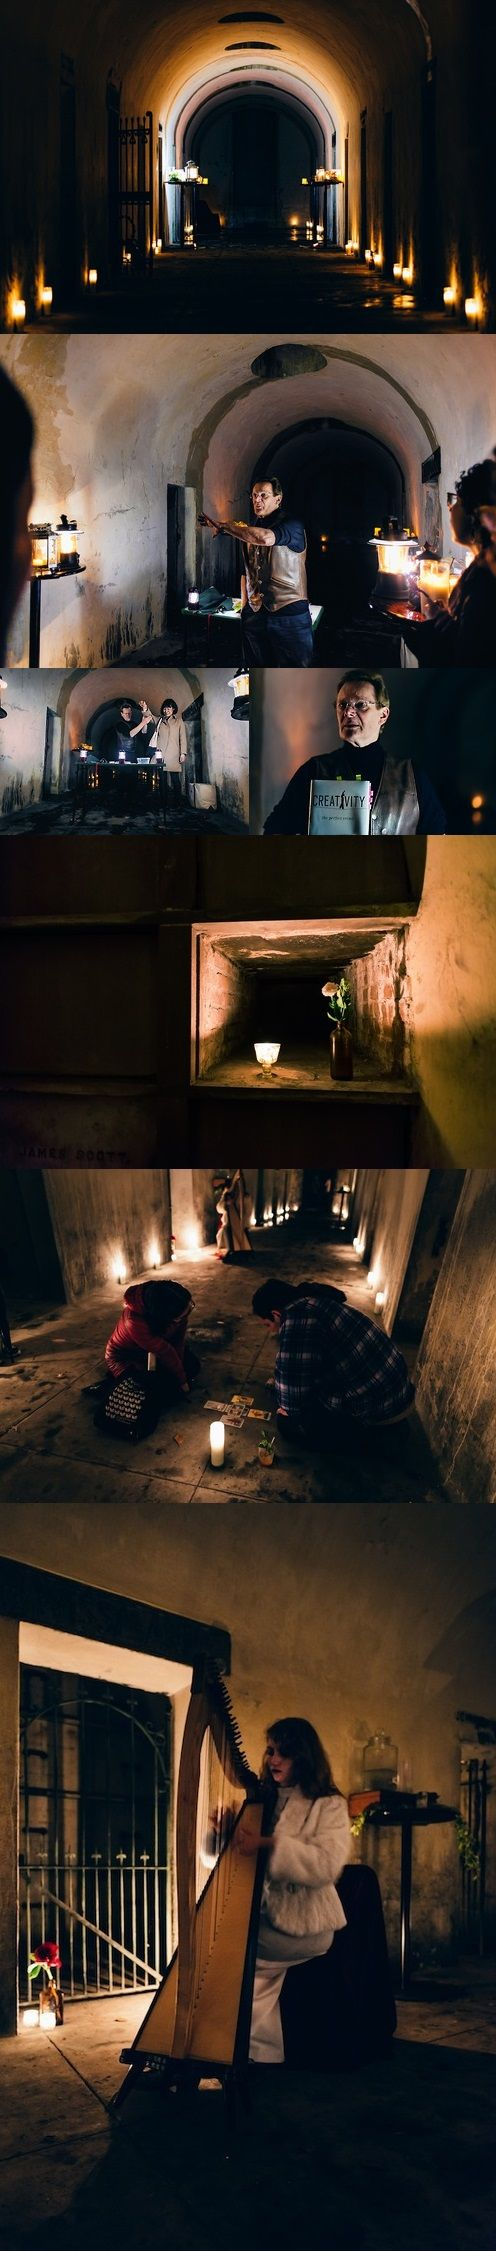 Society Adventures A Clandestine Catacombs Affair with Phillippe Petit